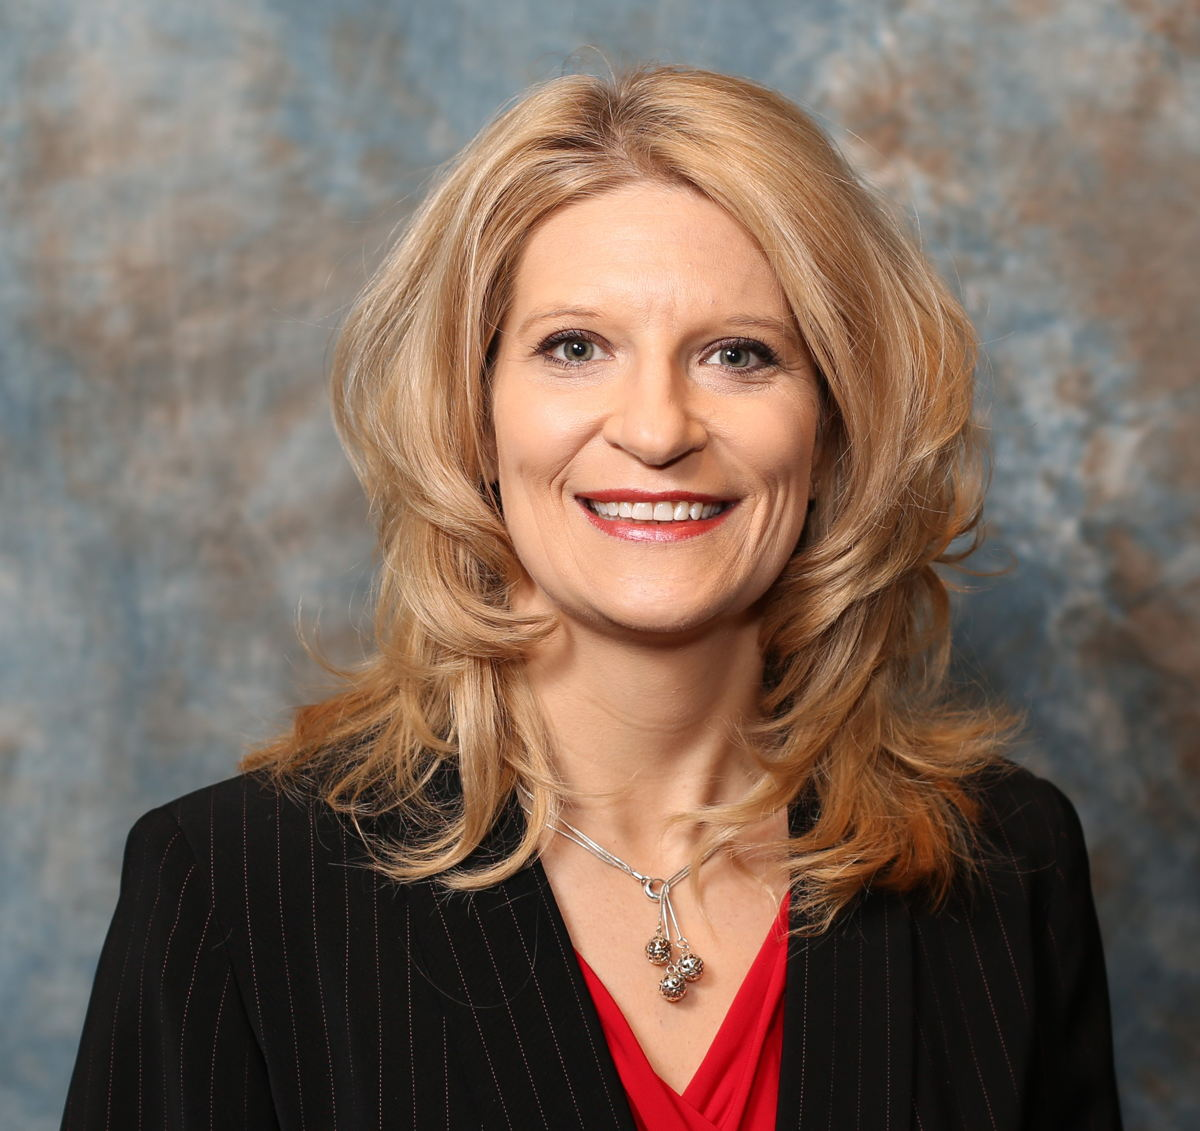 Audrey Harling has been appointed group vice president and general manager, DRiVMotorparts, Europe, Middle East & Africa (EMEA)